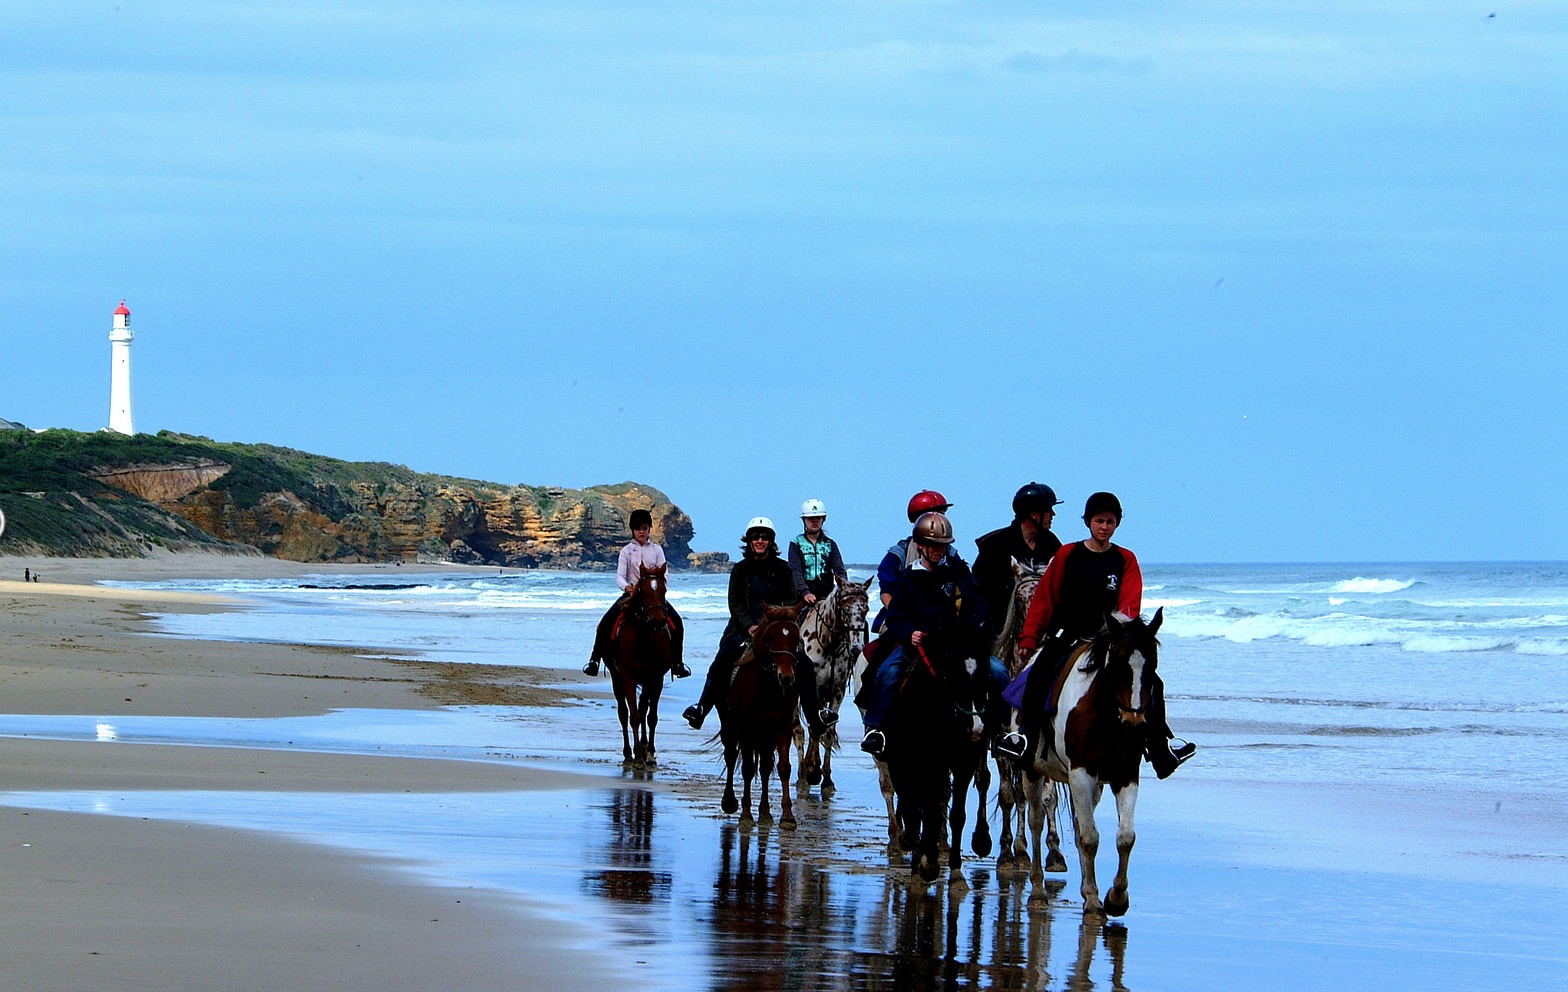 Ride - Isn't it everyone's dream to ride along the beach? You can experience the pristine white sand and blue waters and 6 km of coastline. Blazing saddles offers you the experience of a lifetime.